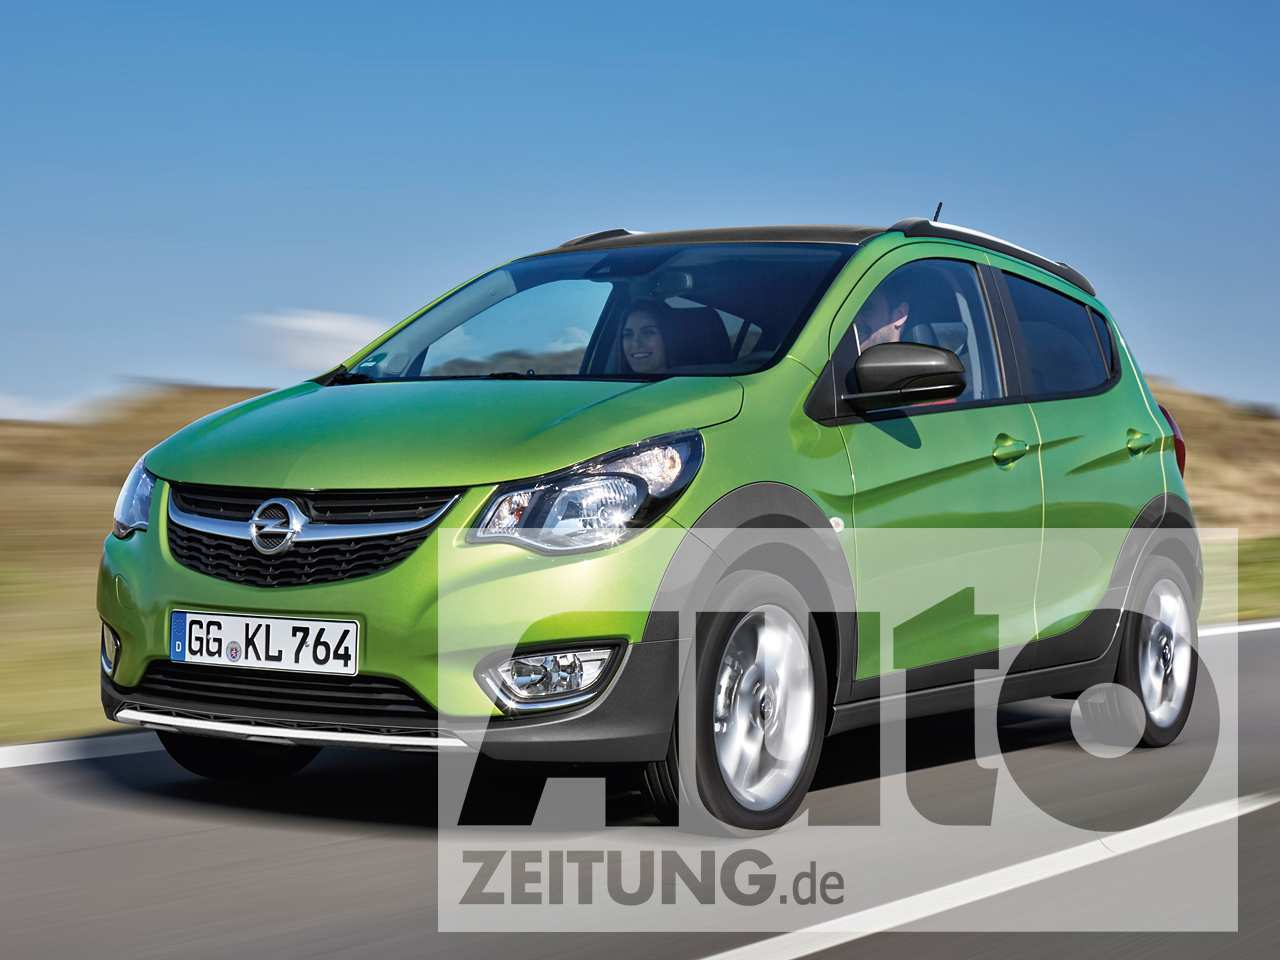 48 All New Nouvelle Opel Karl 2020 Spy Shoot